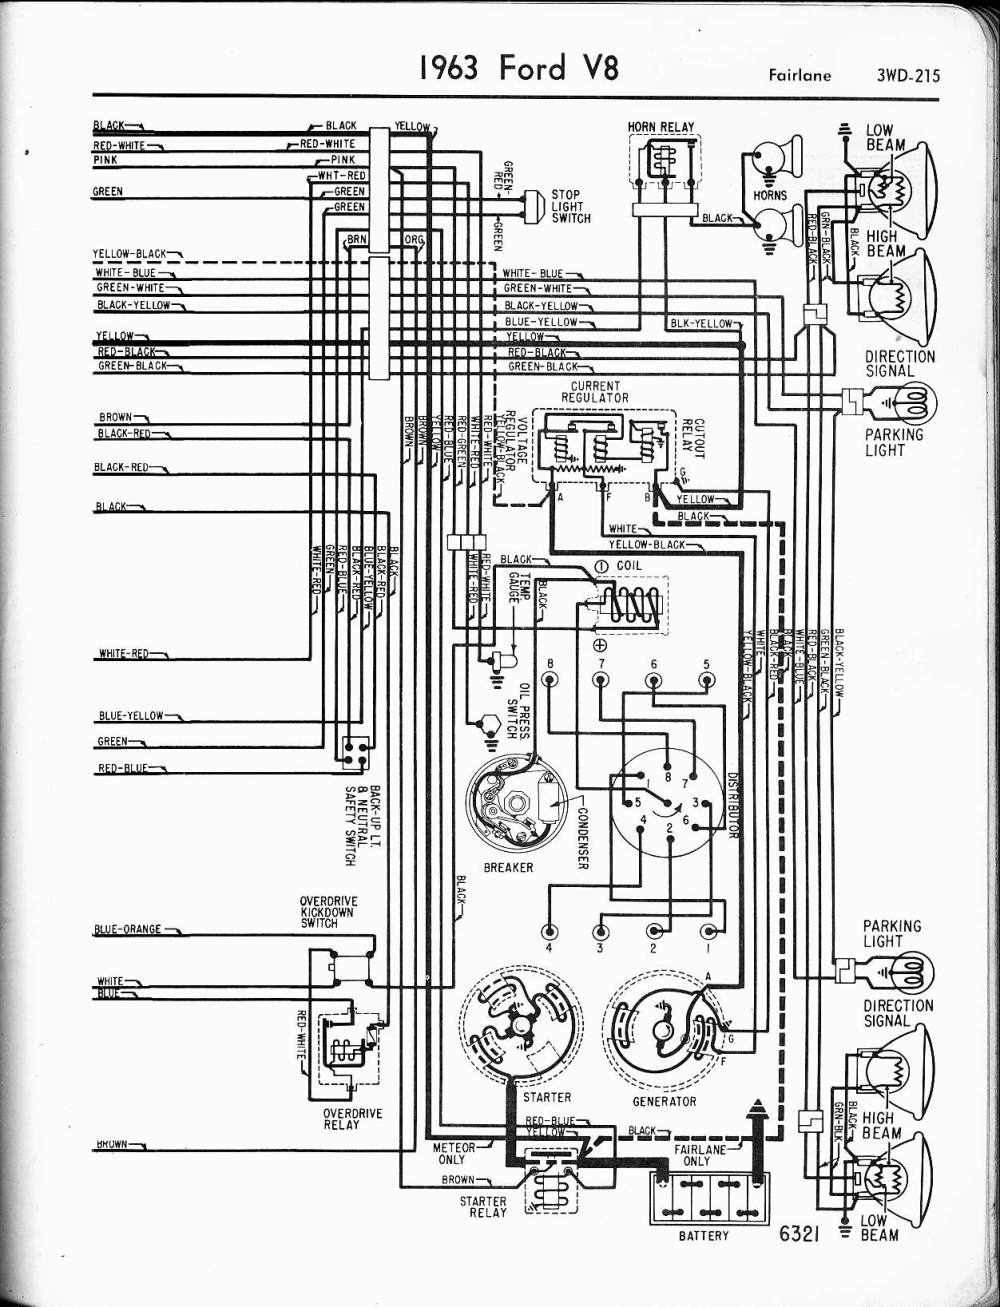 medium resolution of 65 ford galaxie fuse box wiring diagram for you 1967 ford fairlane 1964 galaxie fuse box